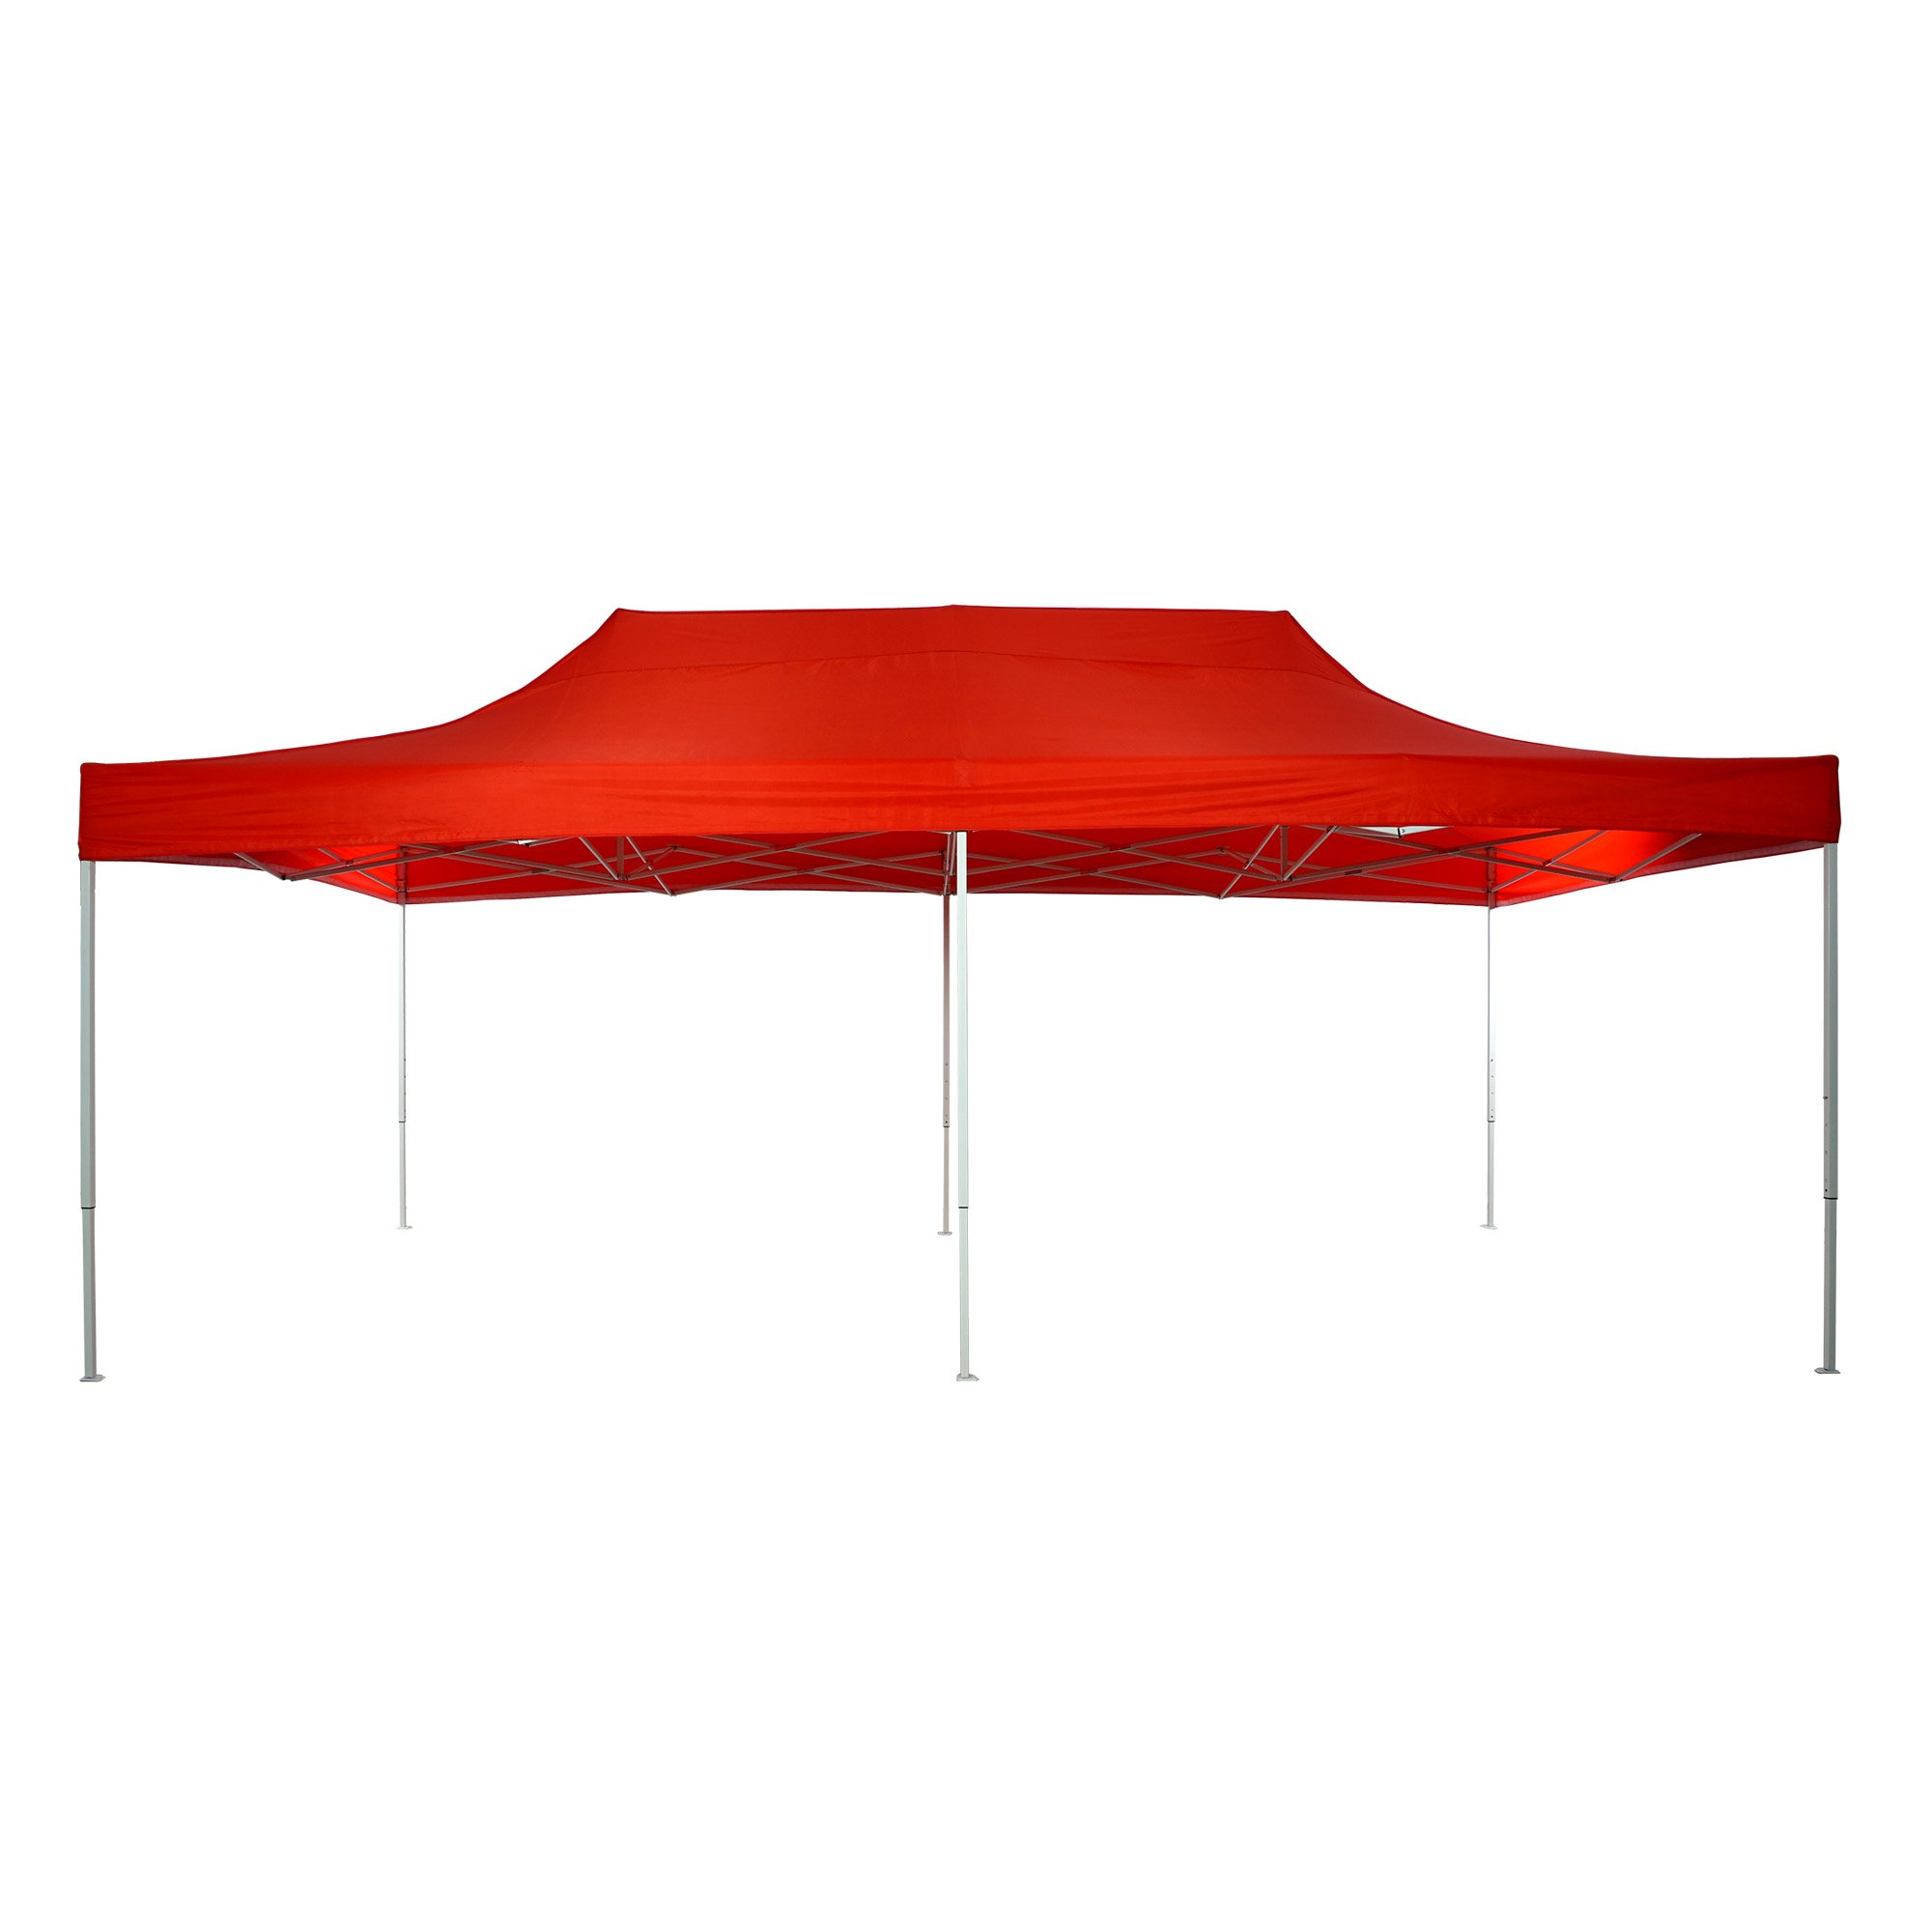 Patio Commercial Canopy White Steel Frame Heavy Duty Pop Up Party Festival Instant Shelter Canopy (10 x 20 Feet, Red)